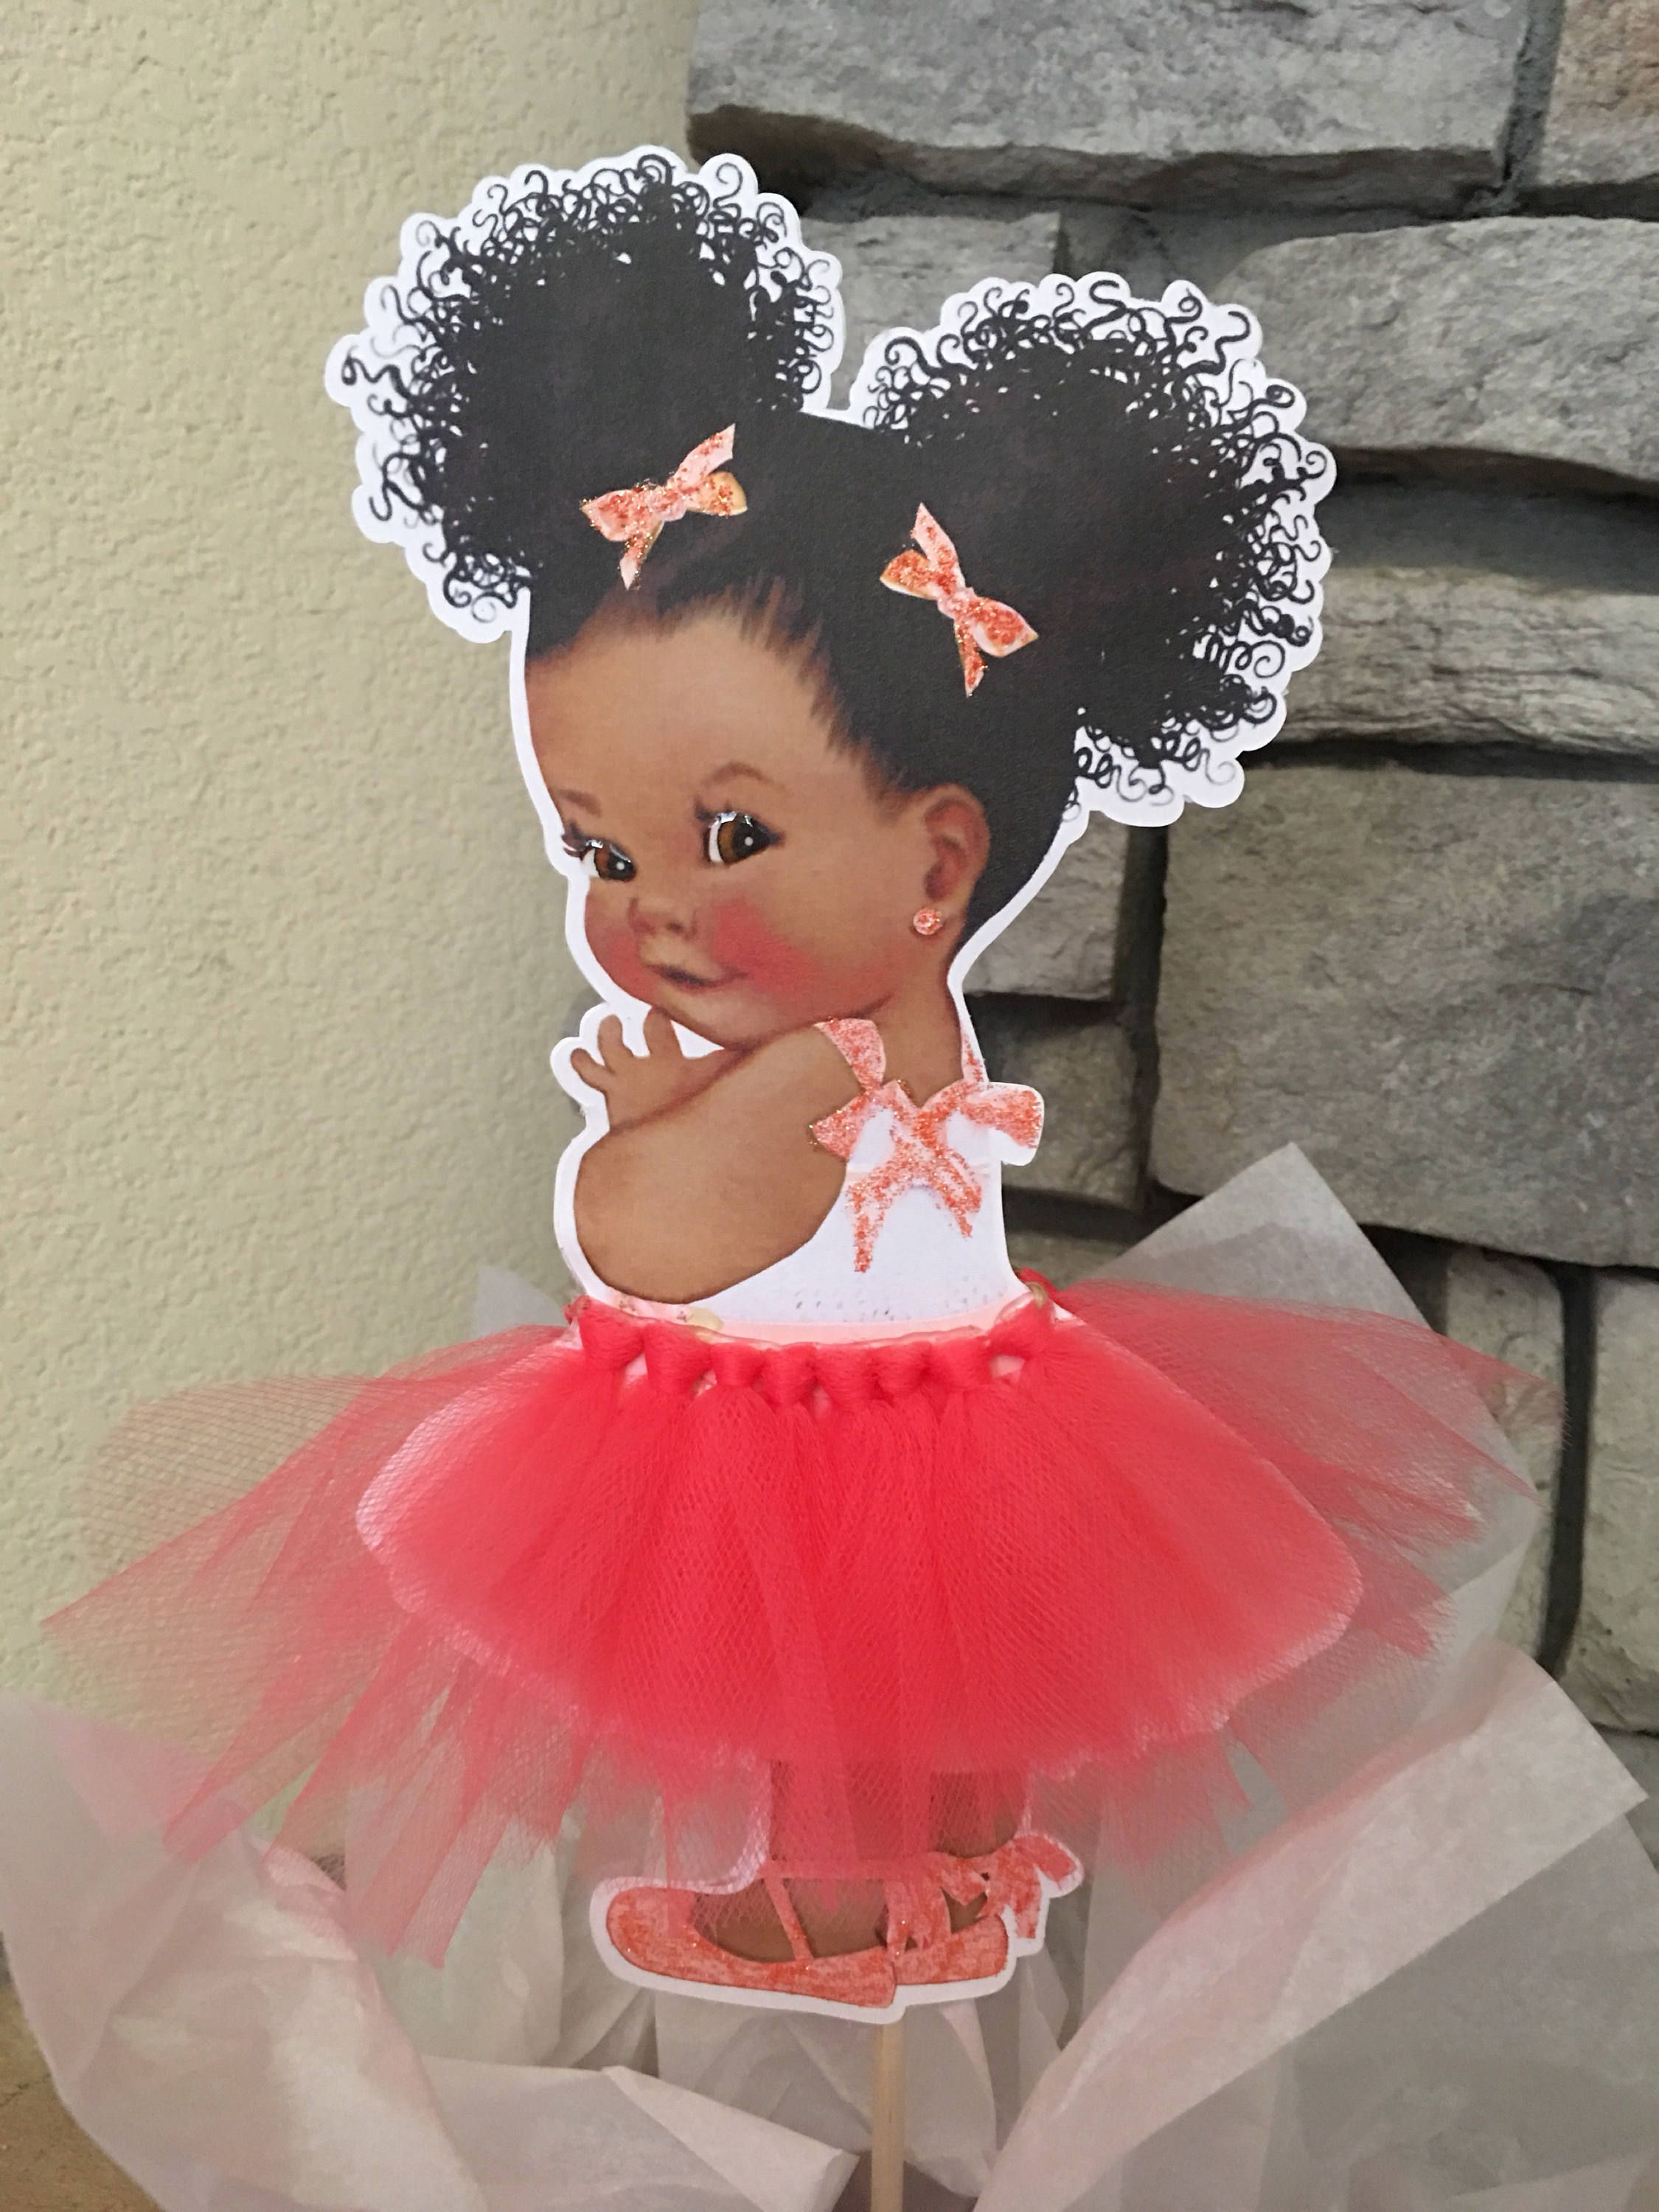 Ballerina Tutu Baby Silver Cutout Pre Cut Light Pink and Silver Ballerina Princess Baby Centerpiece with Wood Stand OR Card Stock Cut Outs